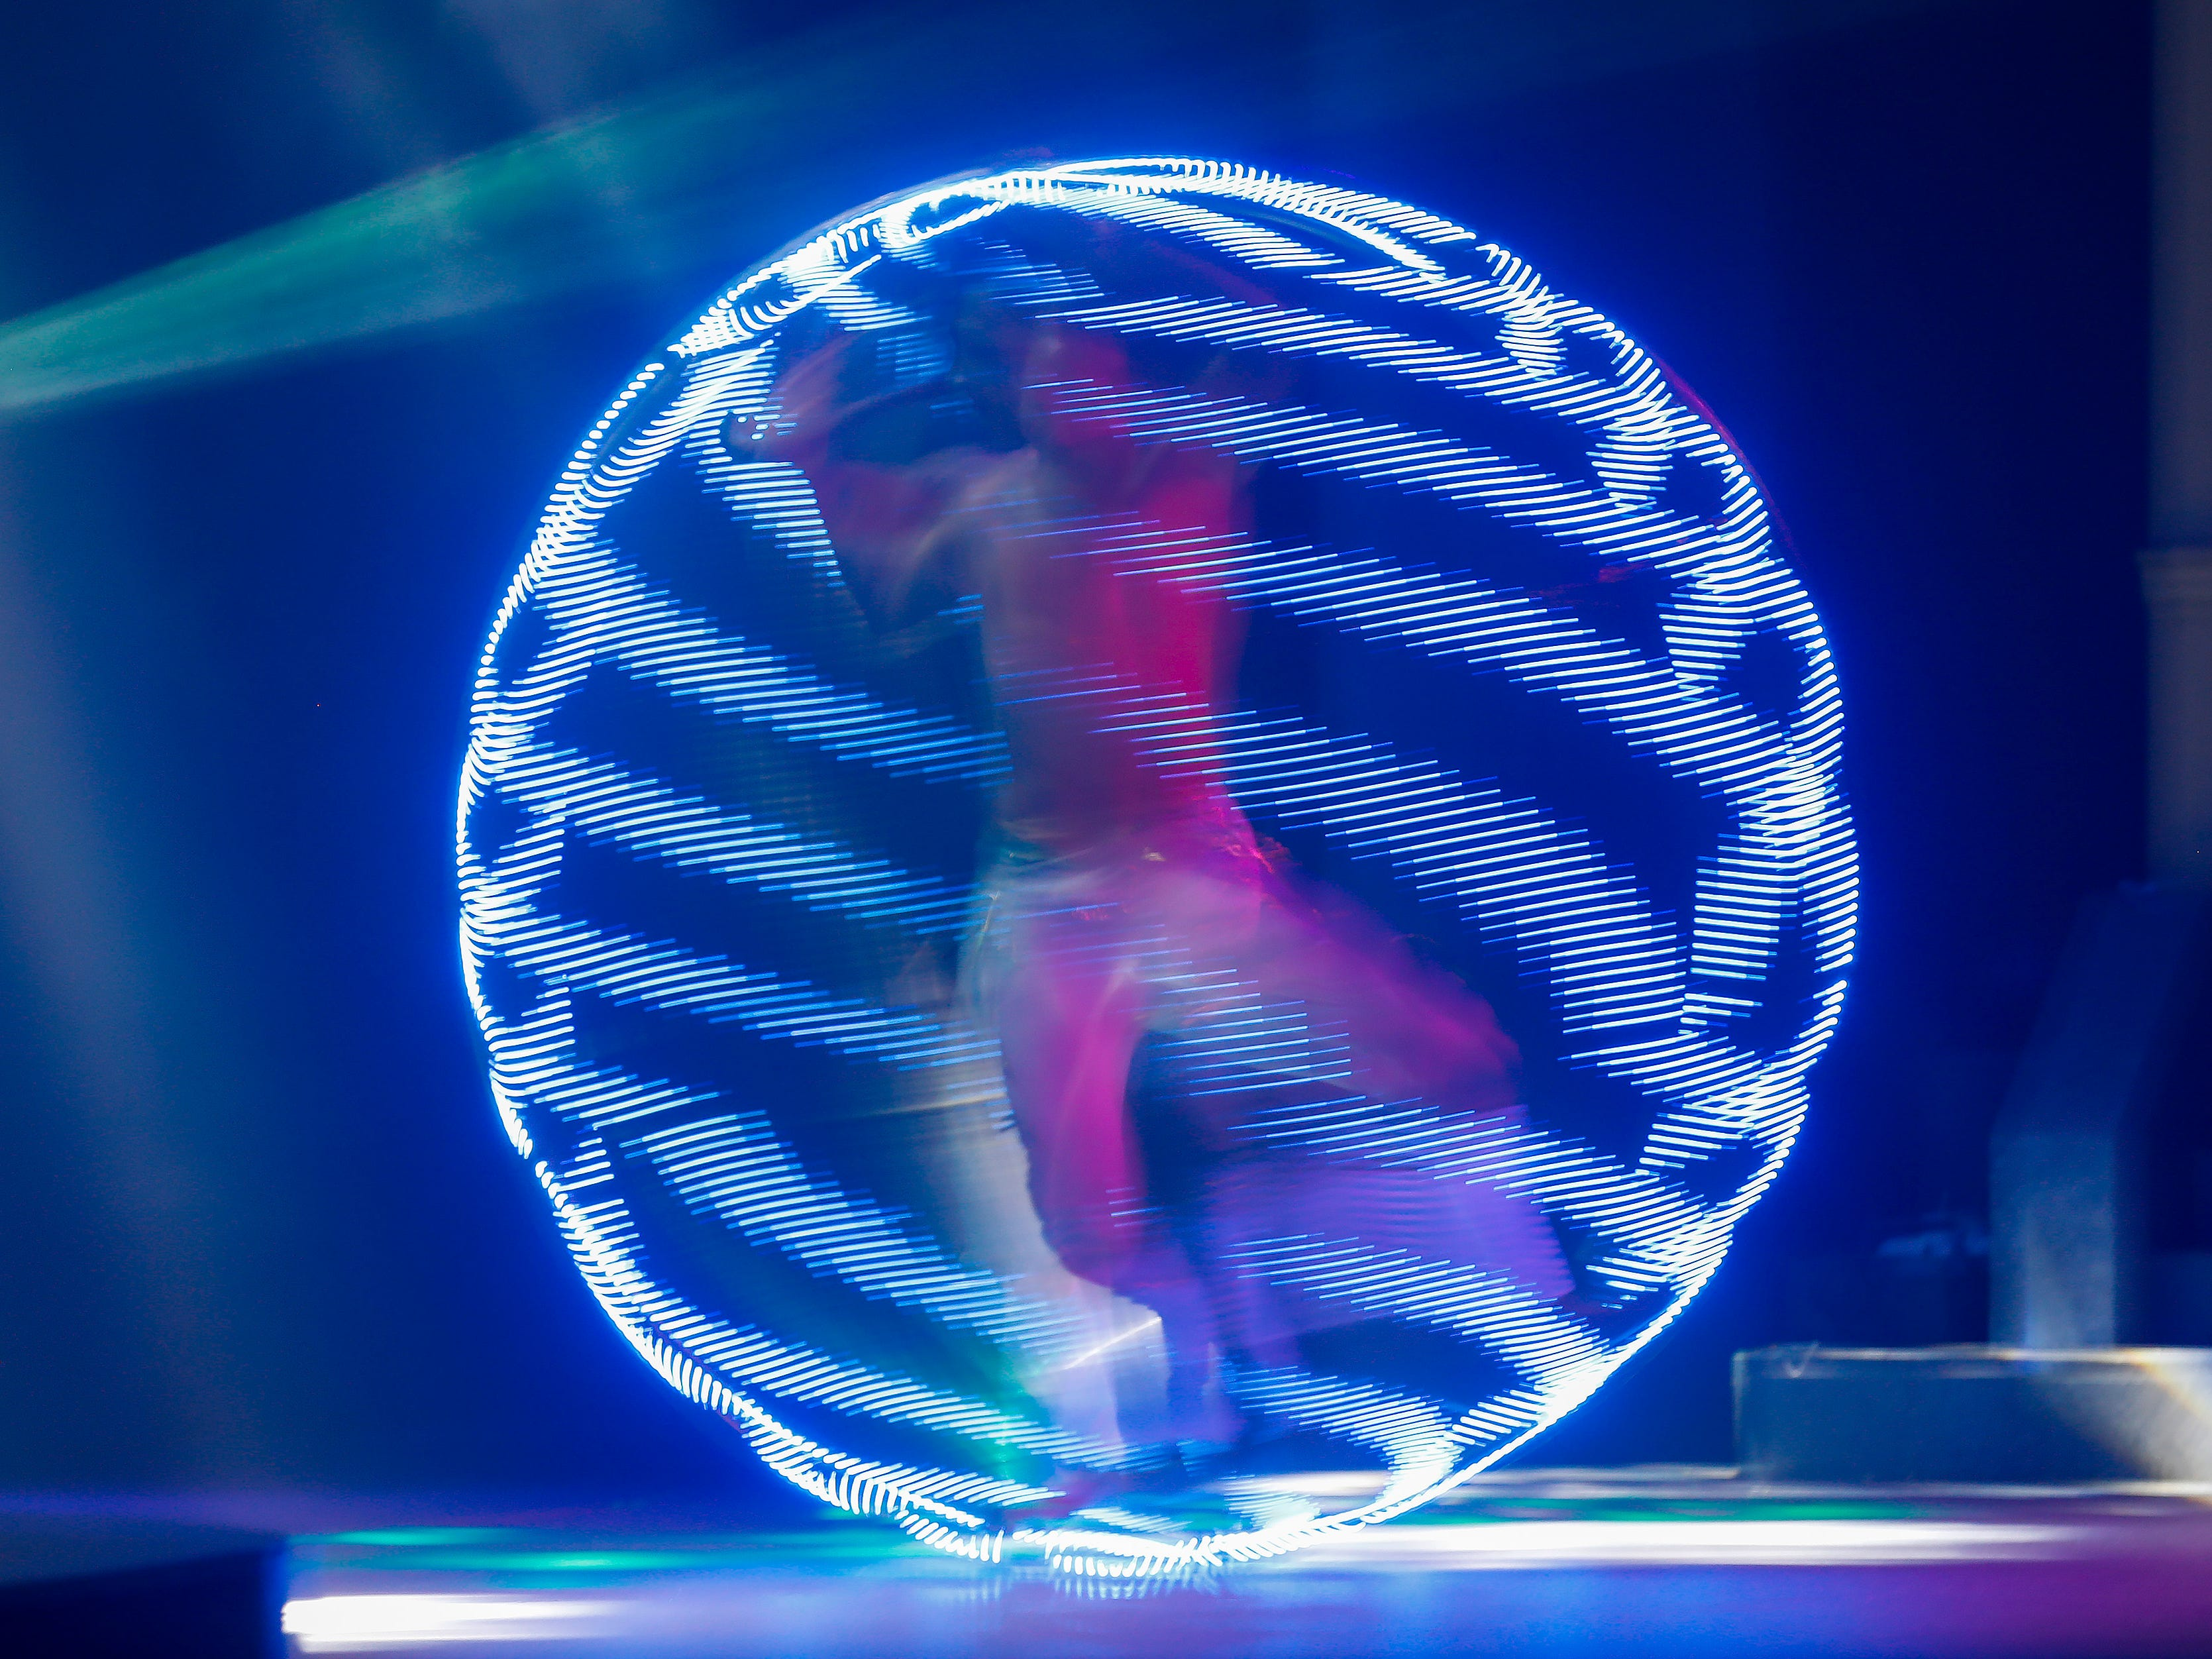 A performer with Phoenix Fire spins in a hoop lined with LED lights during the Festival of Wonder on Wednesday, April 10, 2019 at Silver Dollar City. The event runs Wednesdays through Sundays, April 10-28.